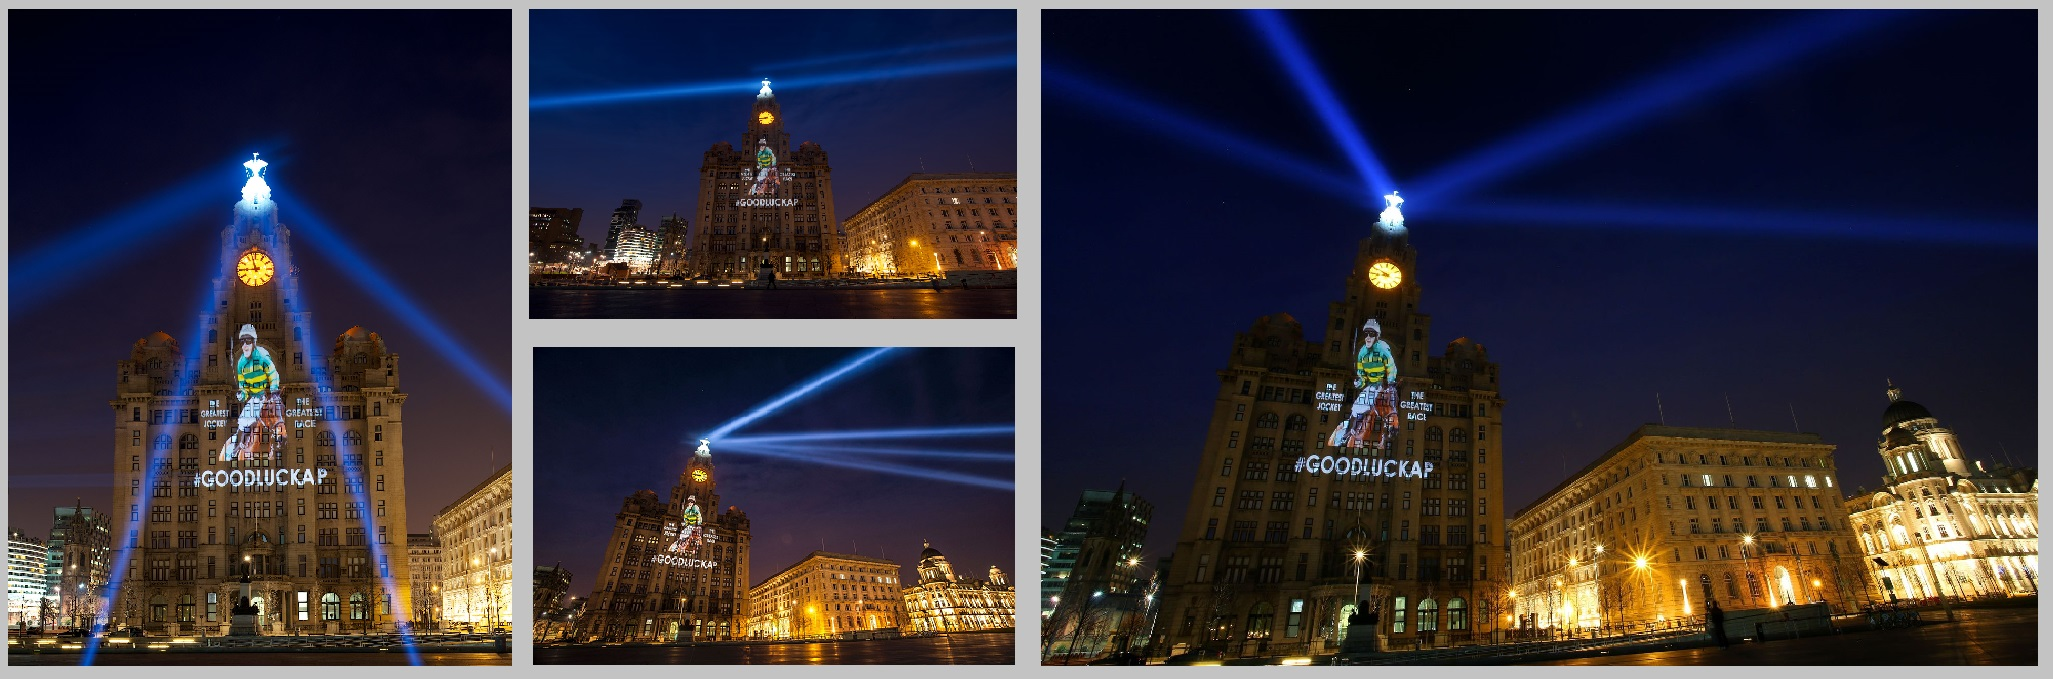 Liverpool Projections onto Liver Building